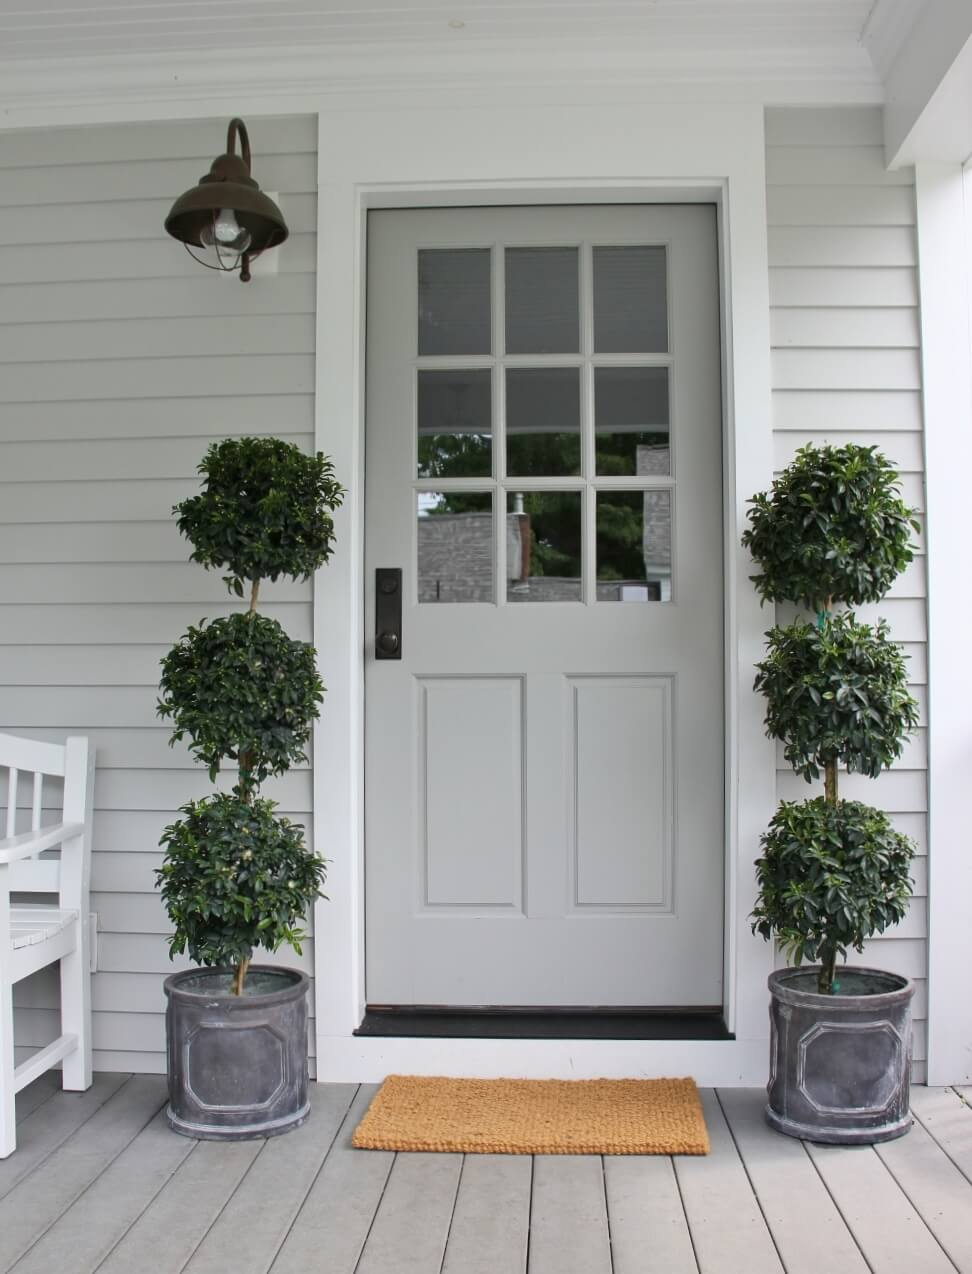 Using Light Grey to Accent Your Home's Exterior